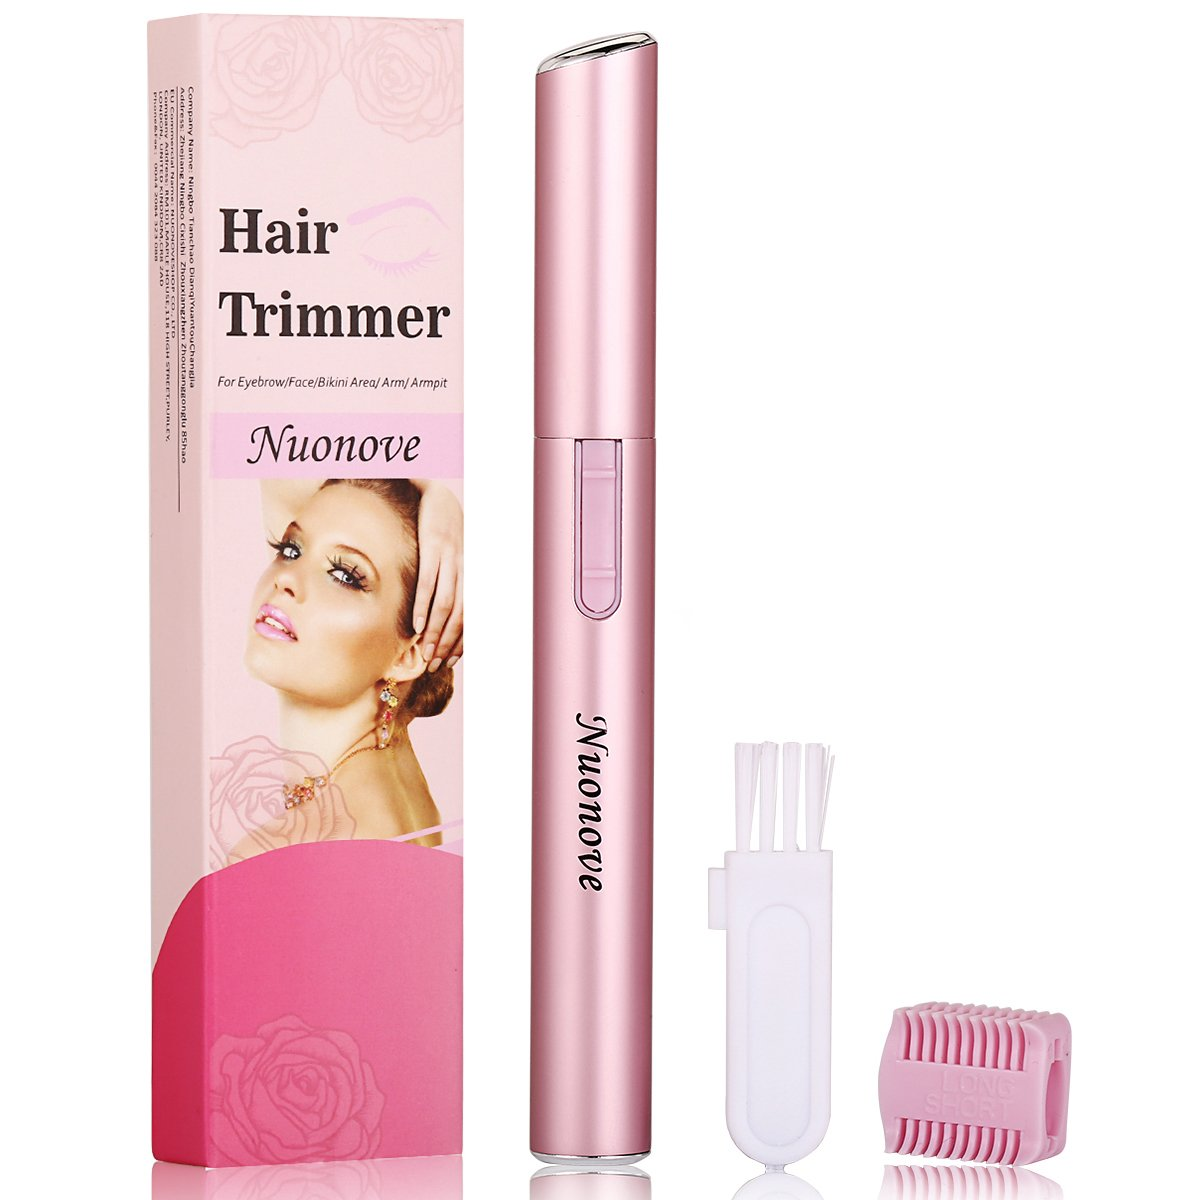 Eyebrow Trimmer Eyebrow Hair Trimmer, Eyebrow Trimmer for Women, Electric Eyebrow Trimmer Eyebrow Trimmer Scissors, Portable Electric Ladies' Eyebrow Shaper (Pink) Nuonove